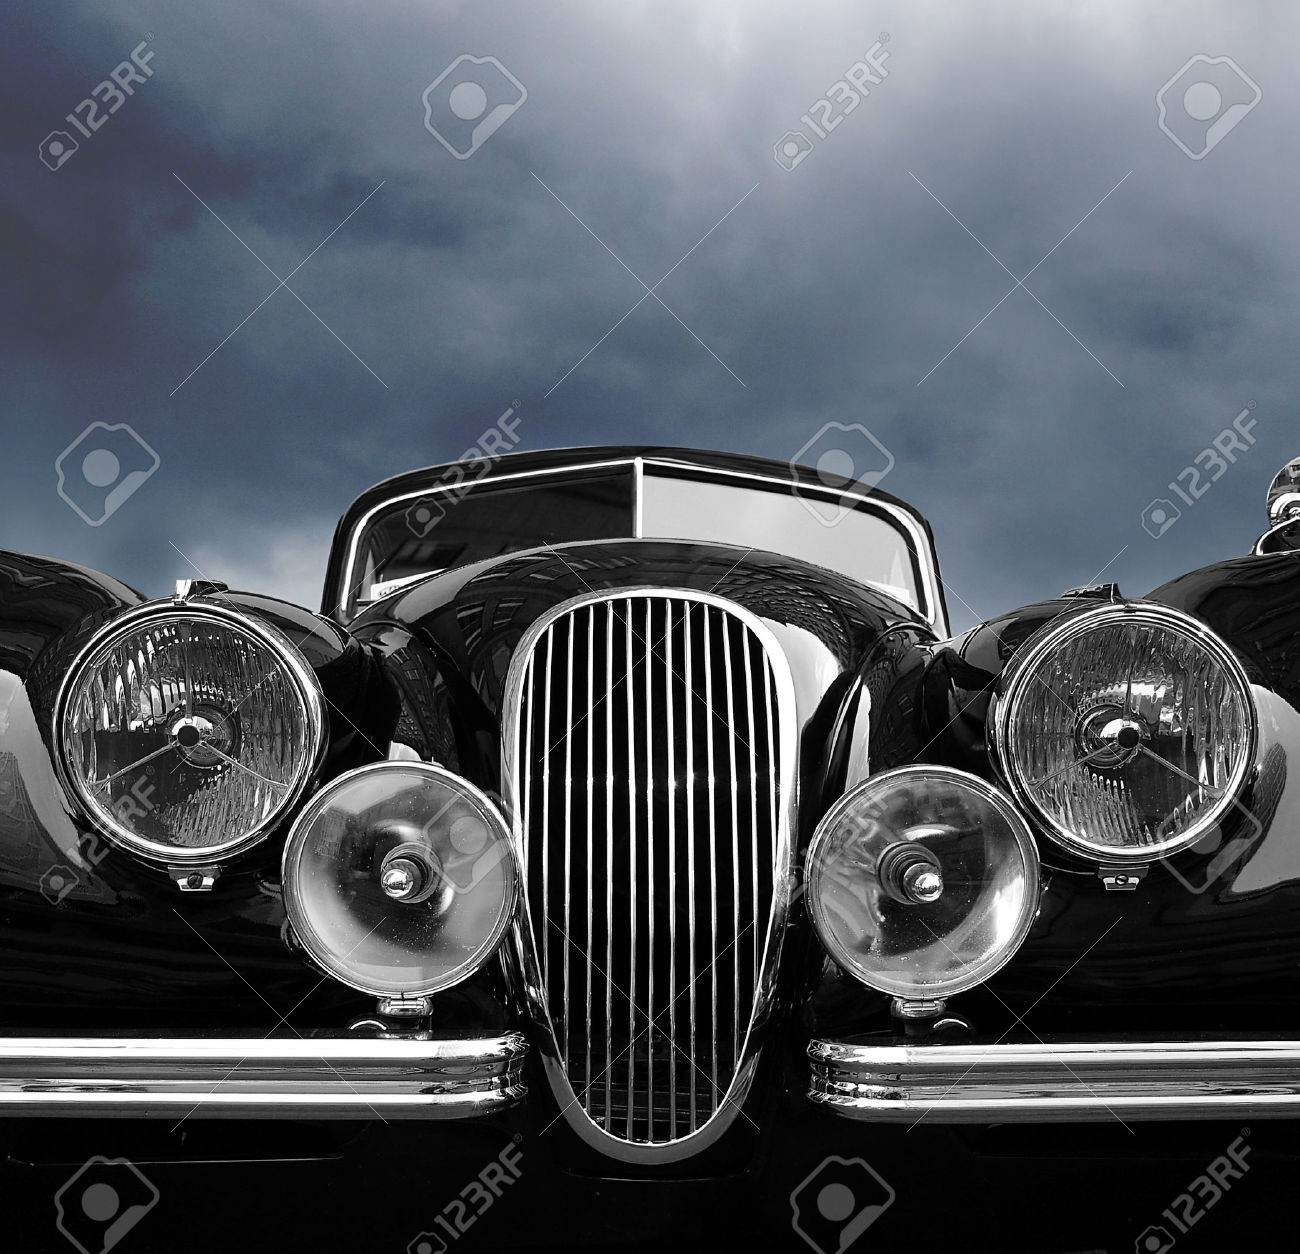 Vintage car front view with dark clouds - 31778861